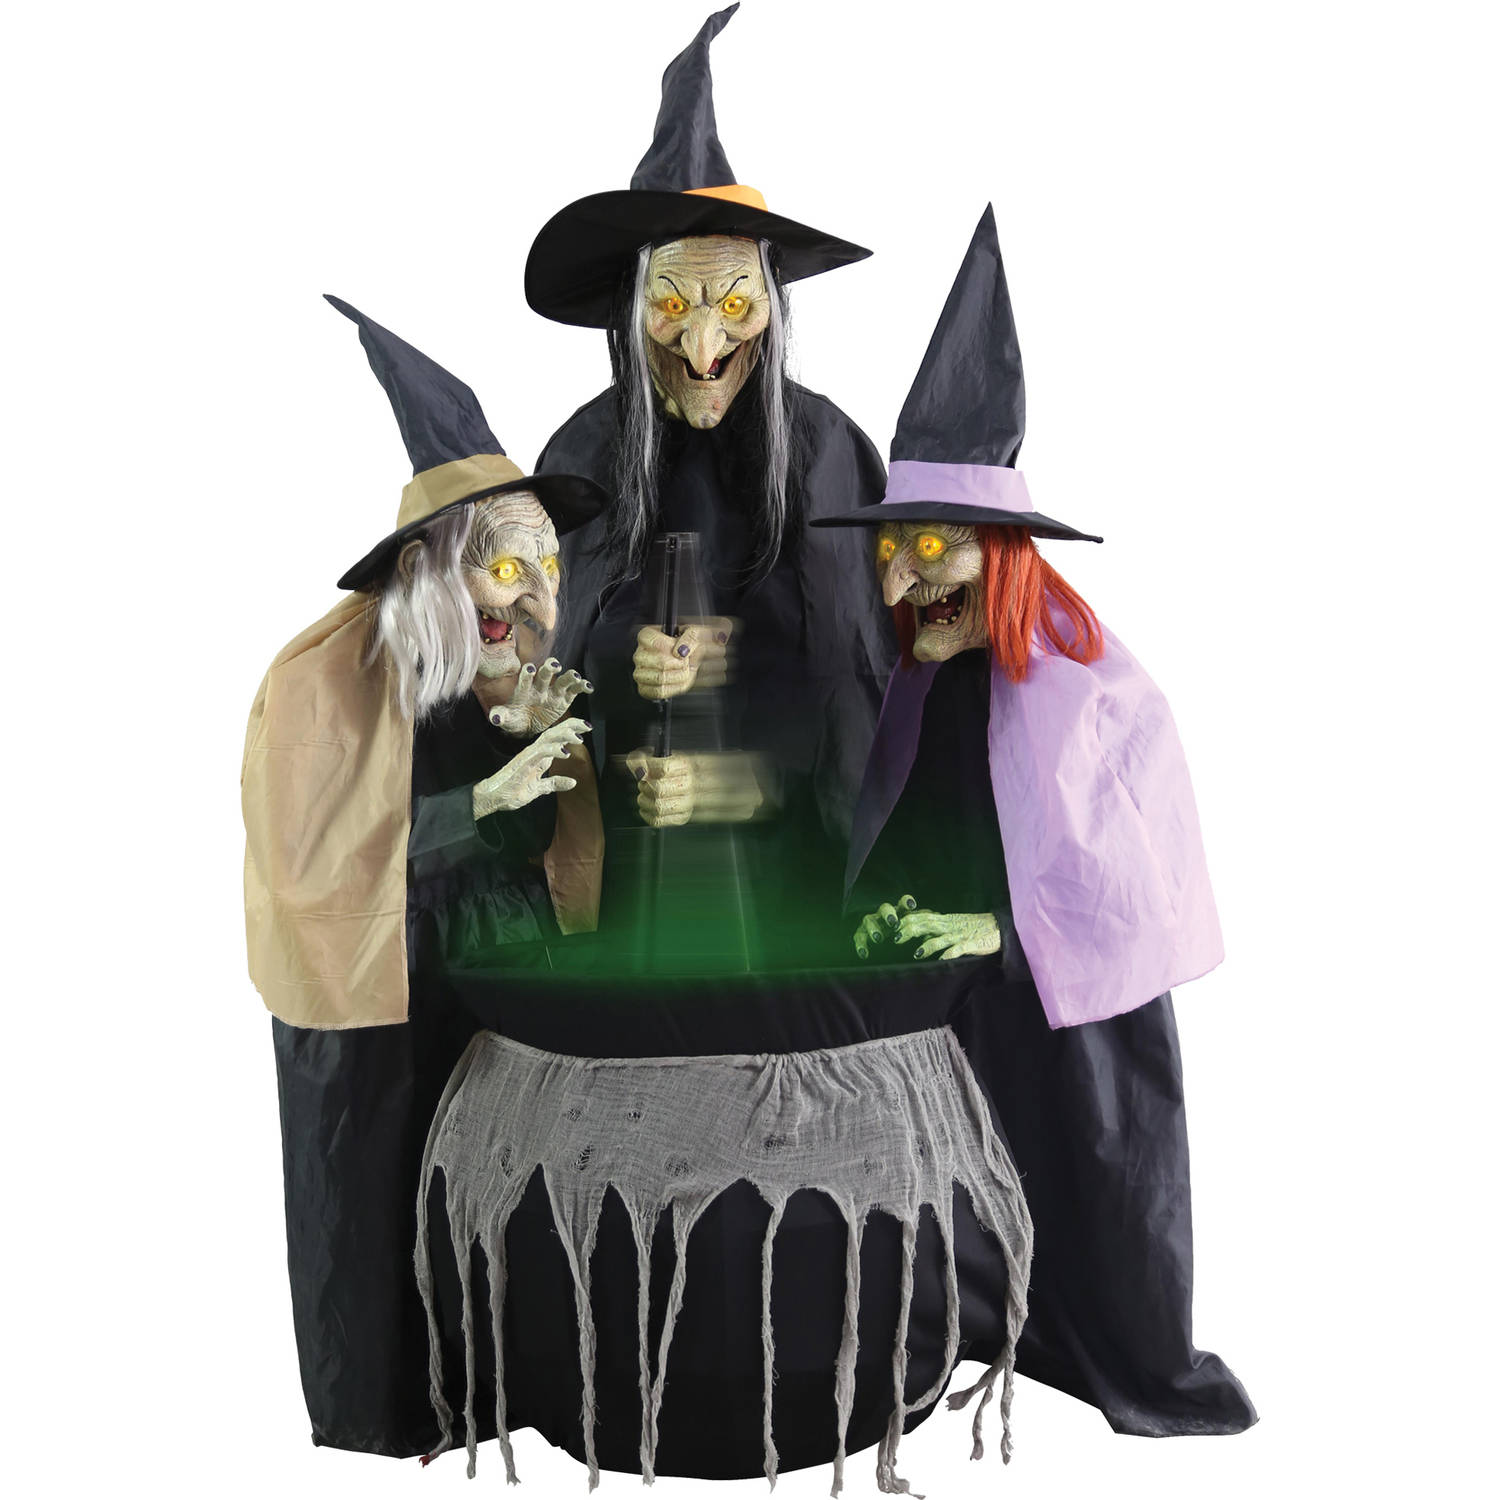 Stitch Witch Sisters Animated Halloween Decoration